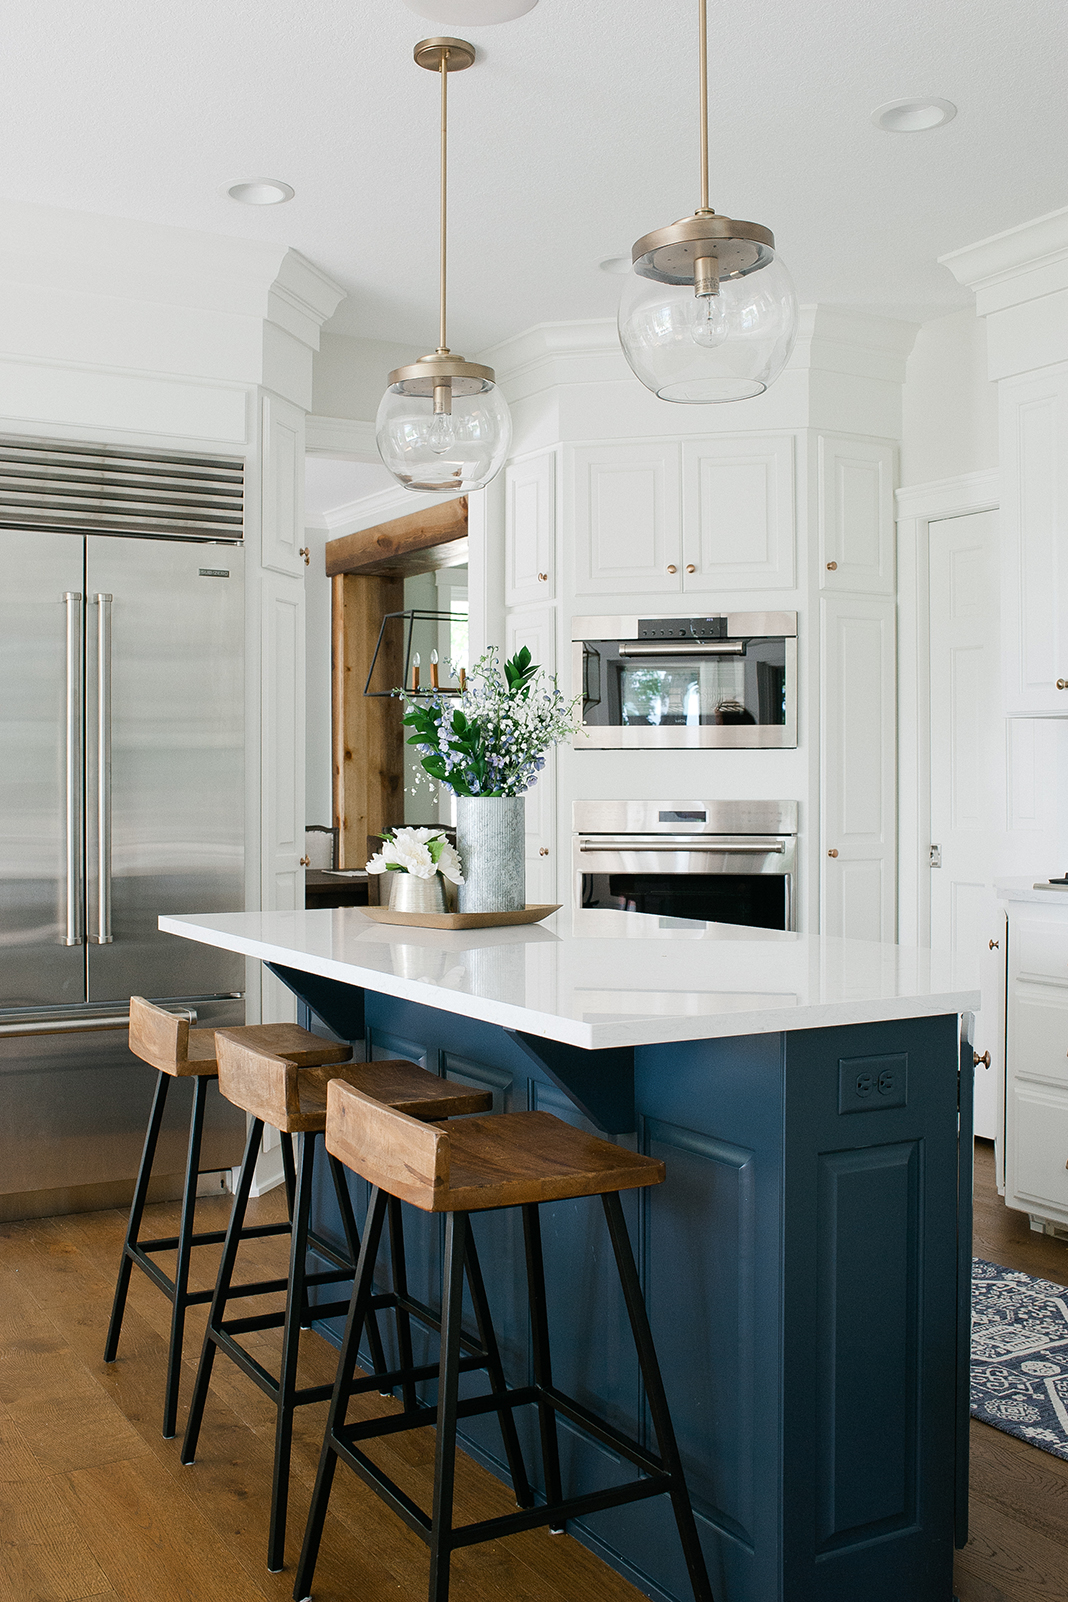 A white kitchen with navy island, stainless steel appliances, and accents of wood.